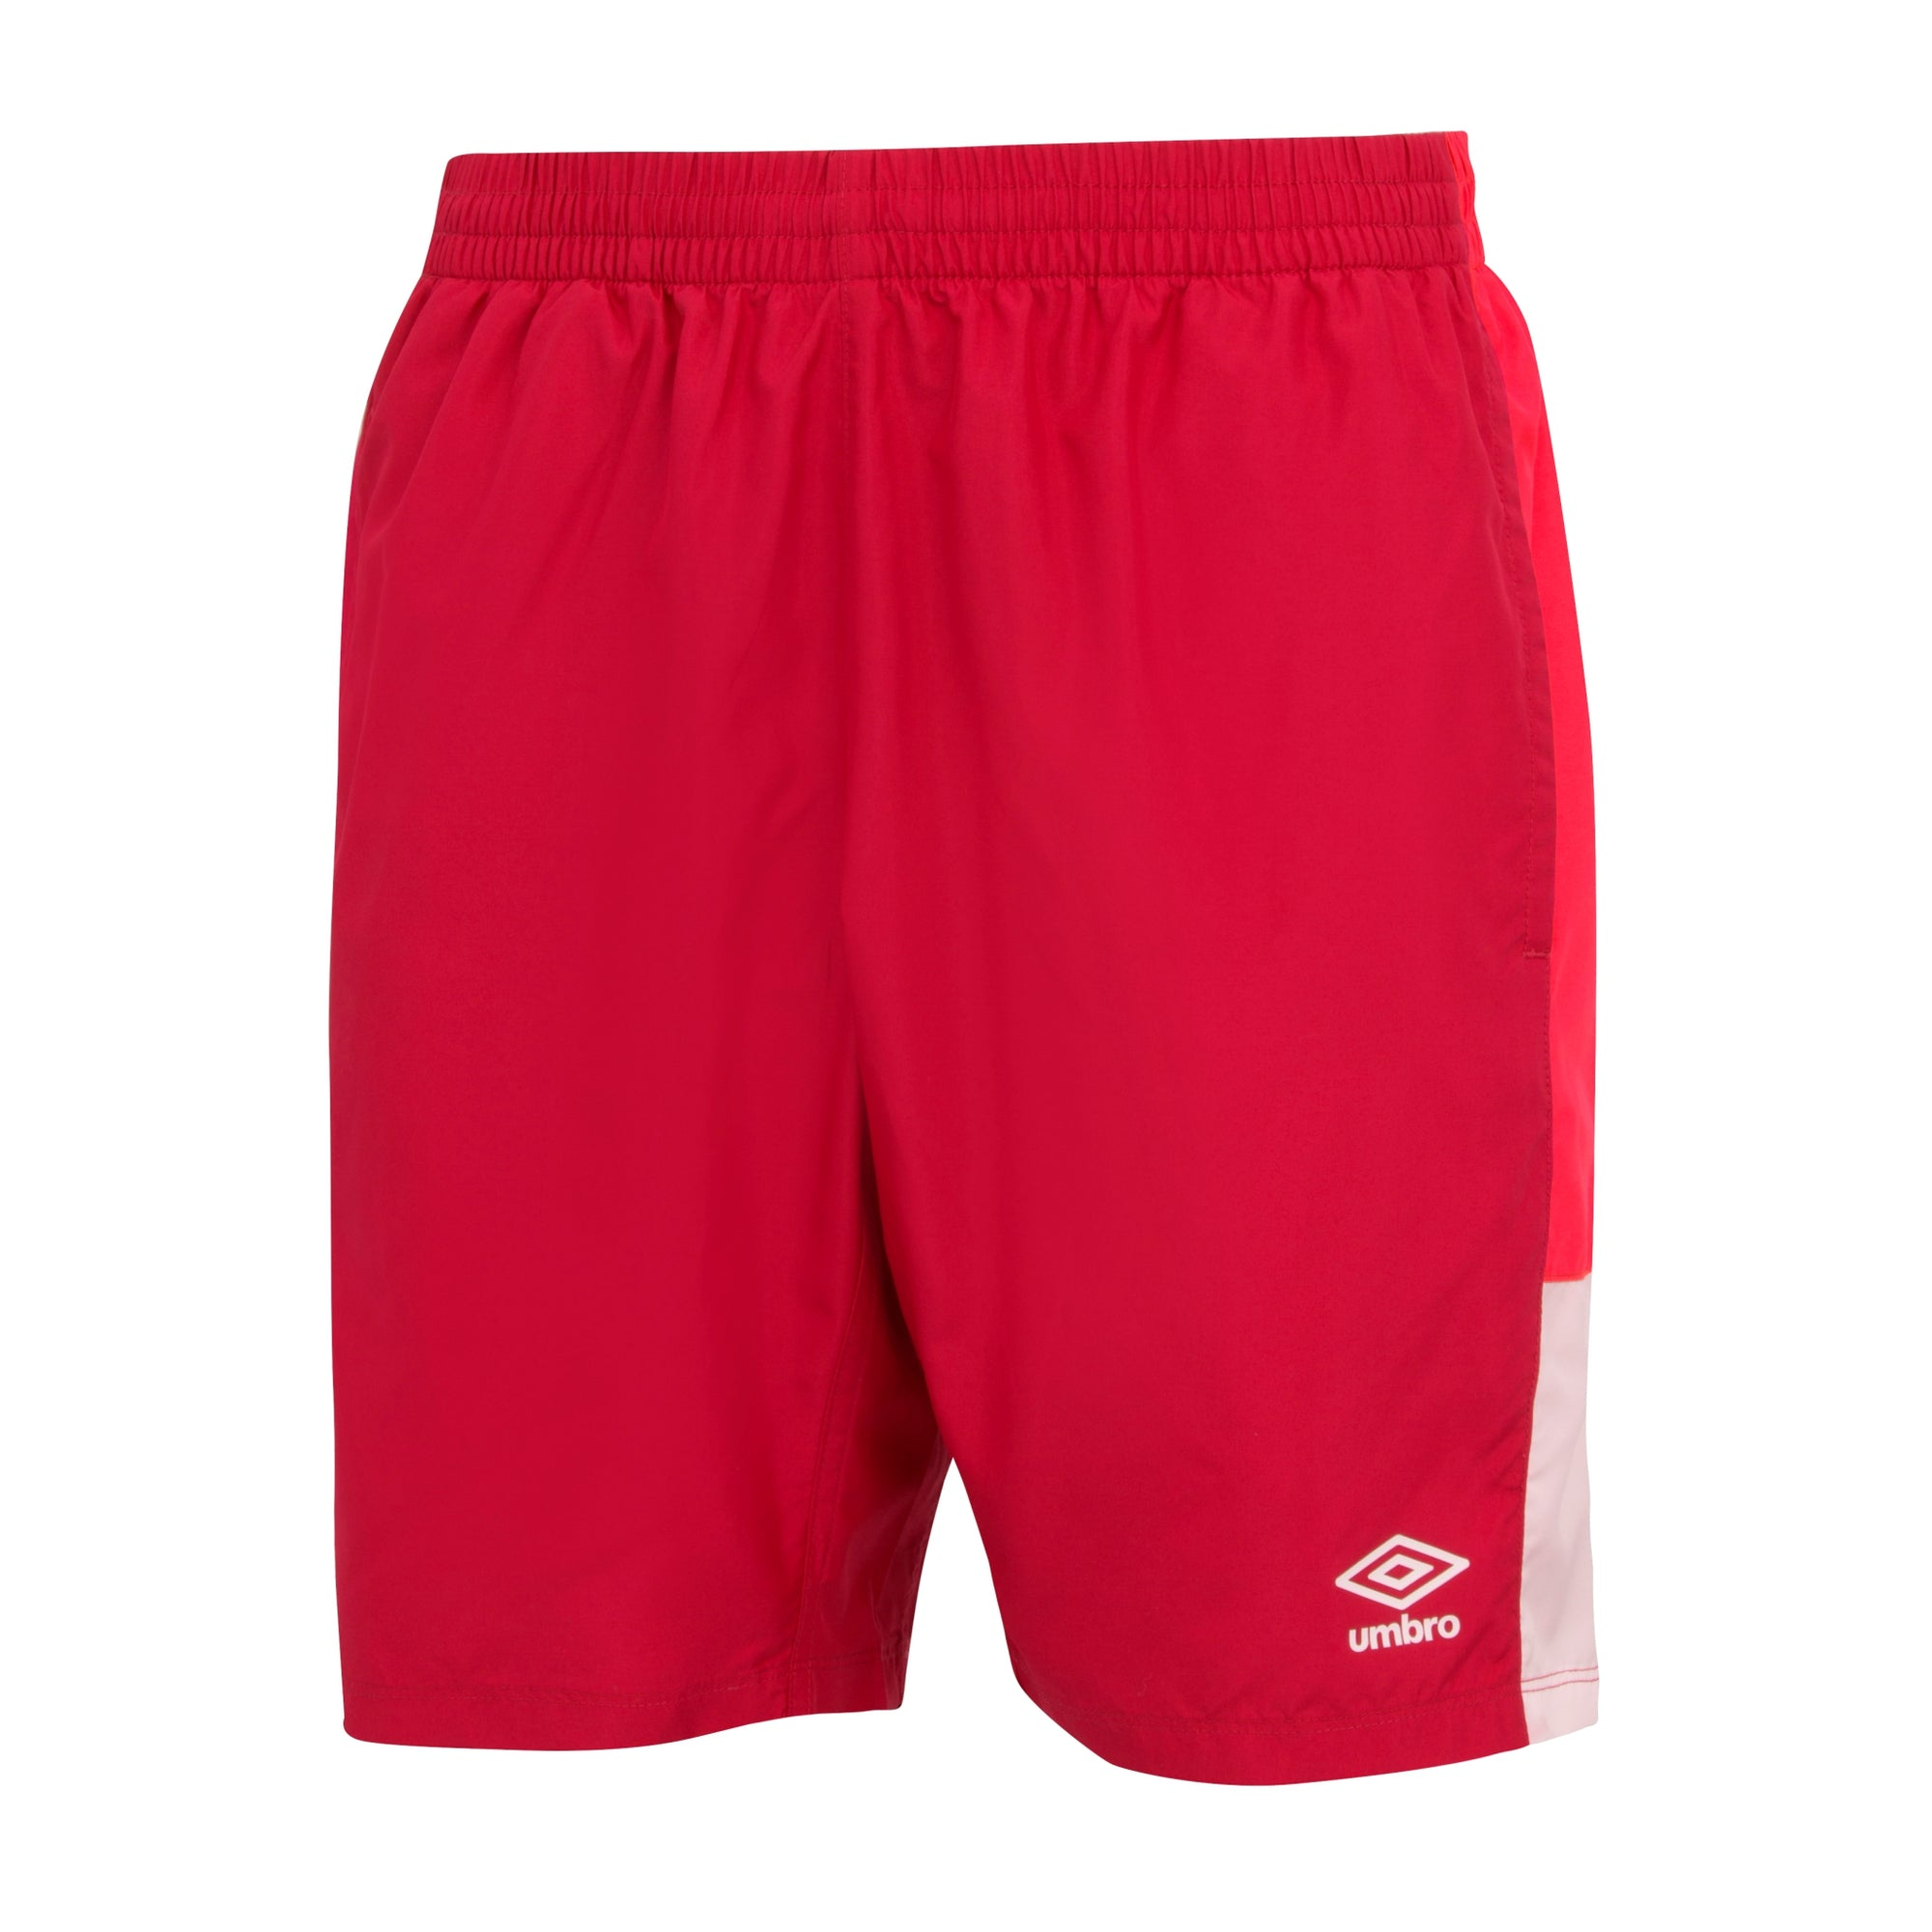 Umbro Training Short - Jester Red/Vermillion/White